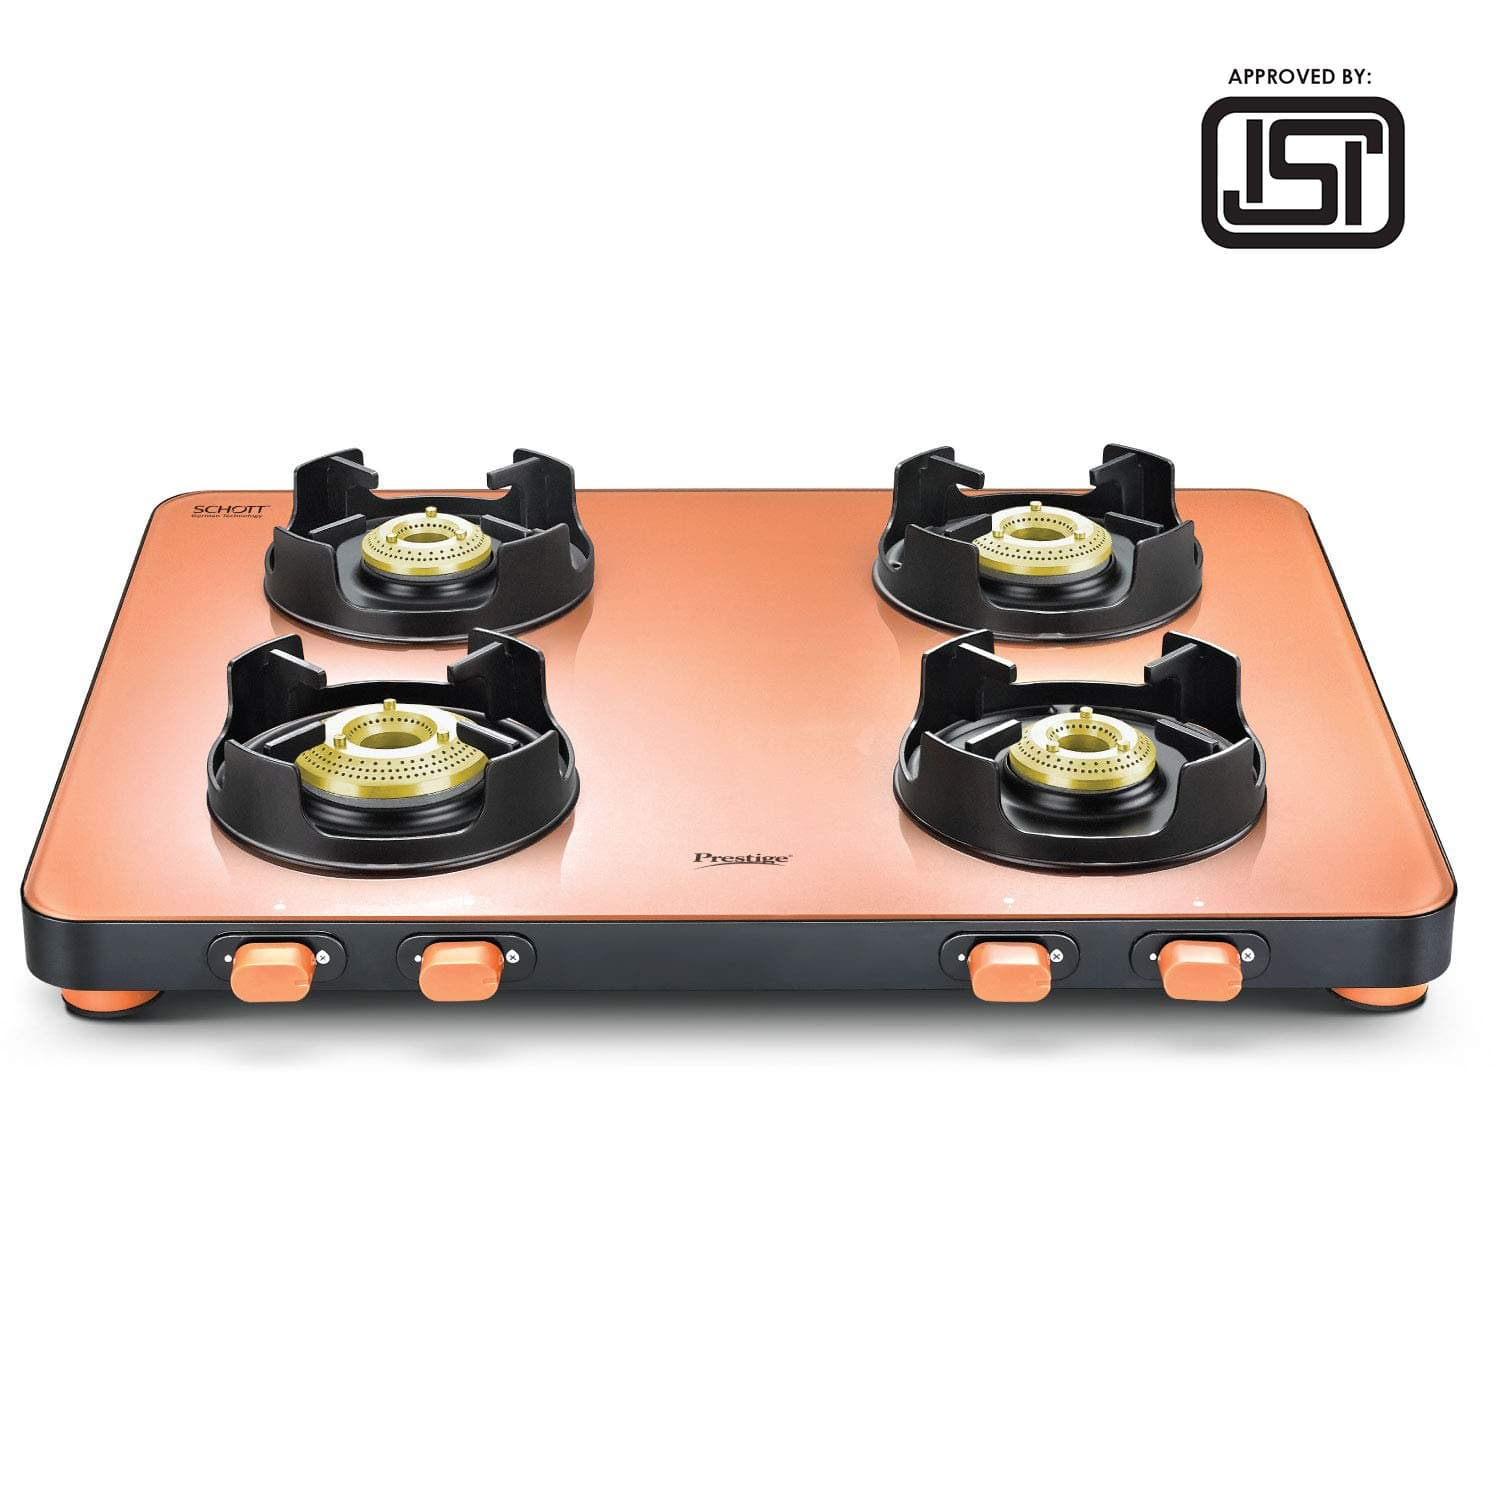 Prestige Edge Schott Glass 4 Burner Gas Stove, Pastel (ISI Approved) PEPS04 - KITCHEN MART